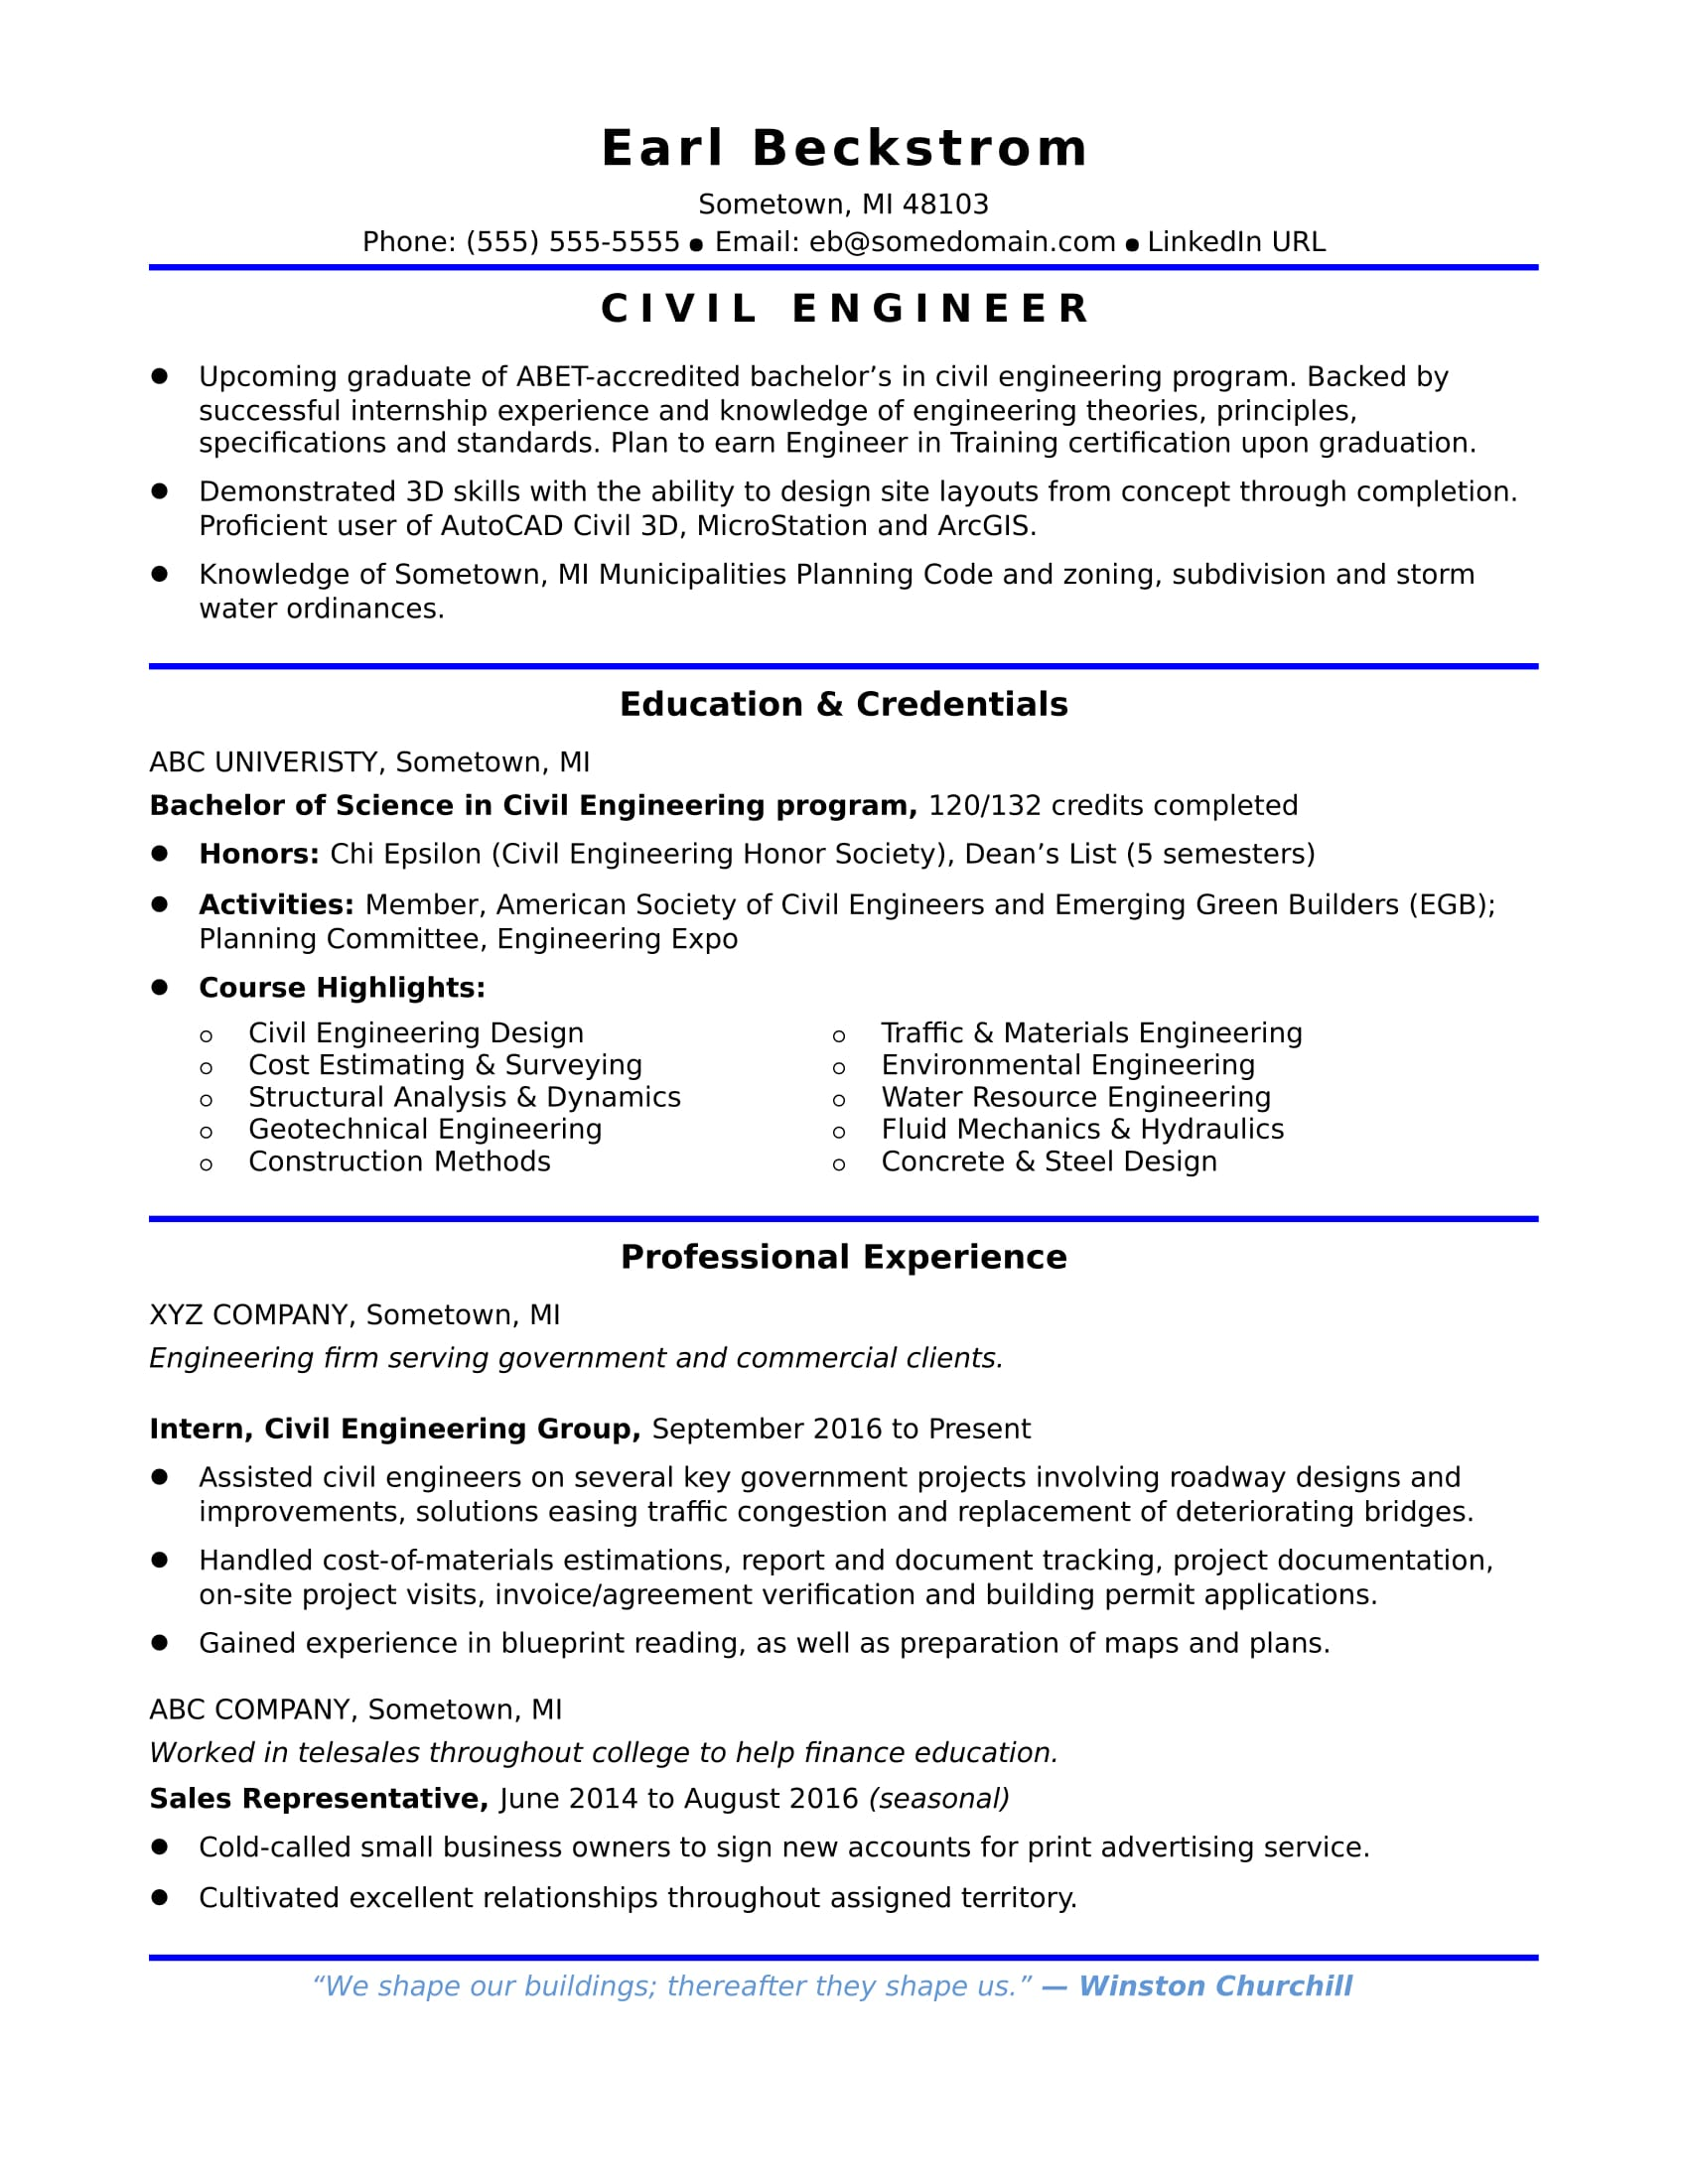 Sample resume for an entry level civil engineer monster sample resume for an entry level civil engineer yelopaper Choice Image